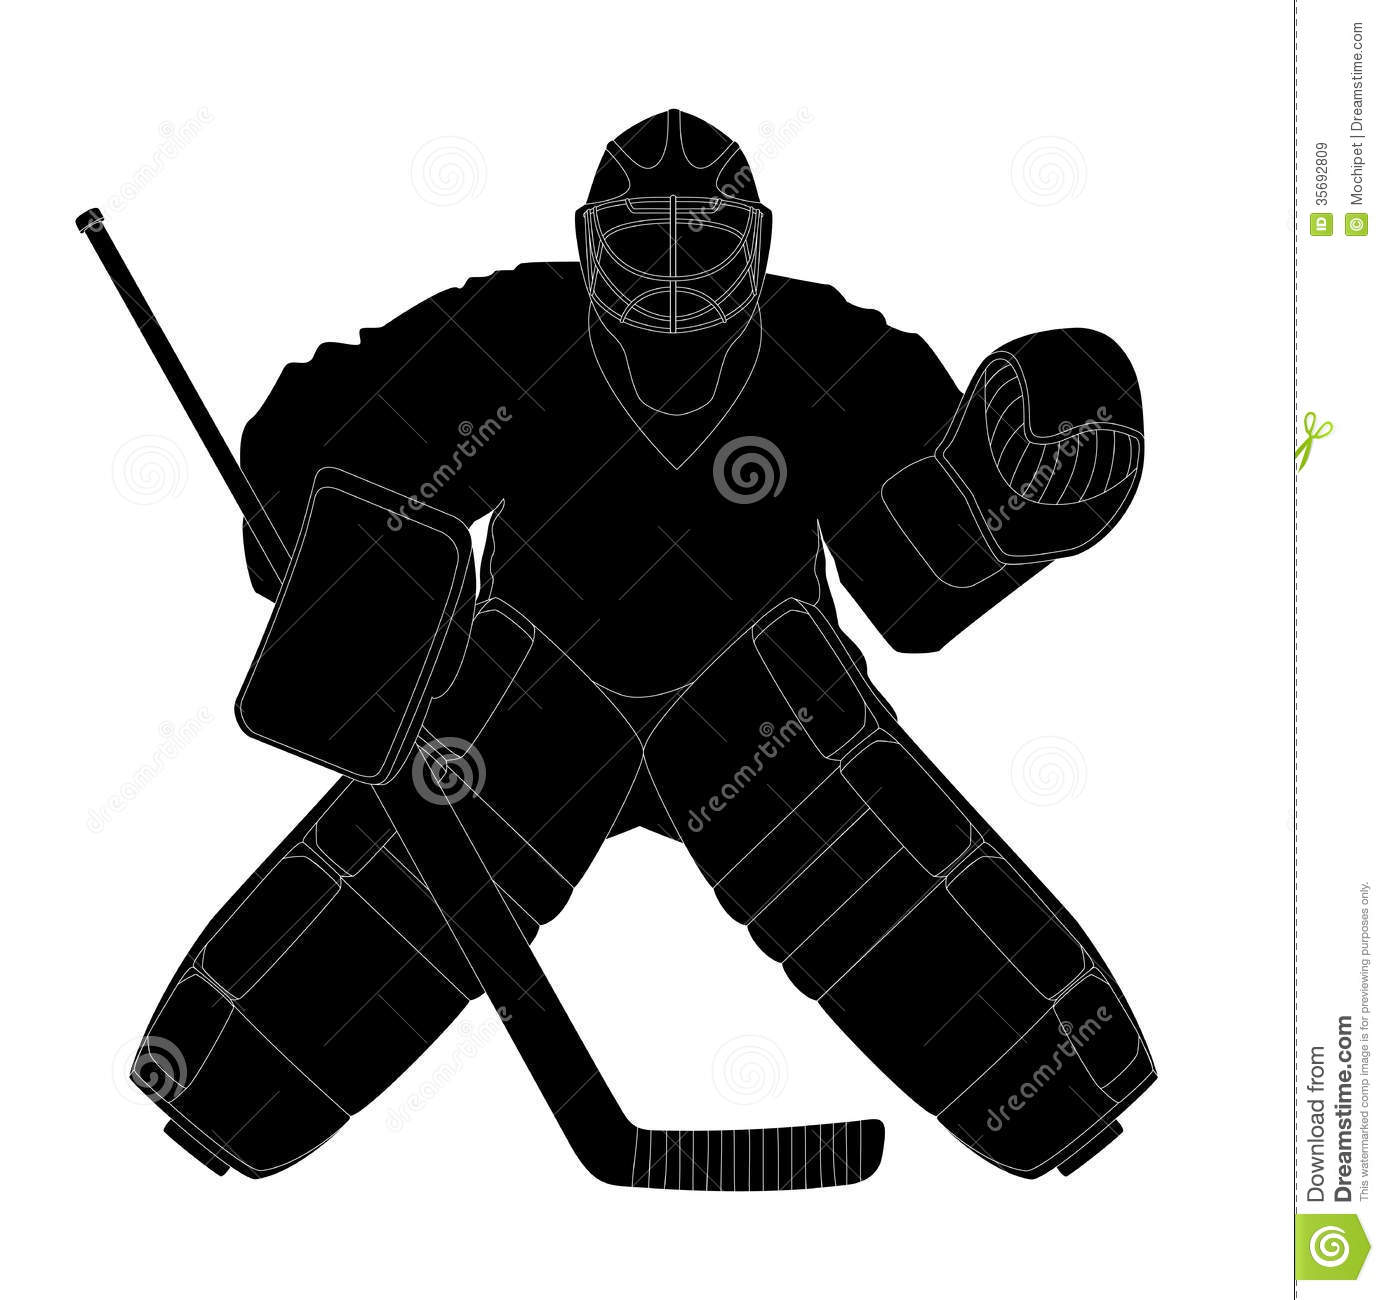 Silhouette Hockey Goalie Stock Vector Illustration Of Activity